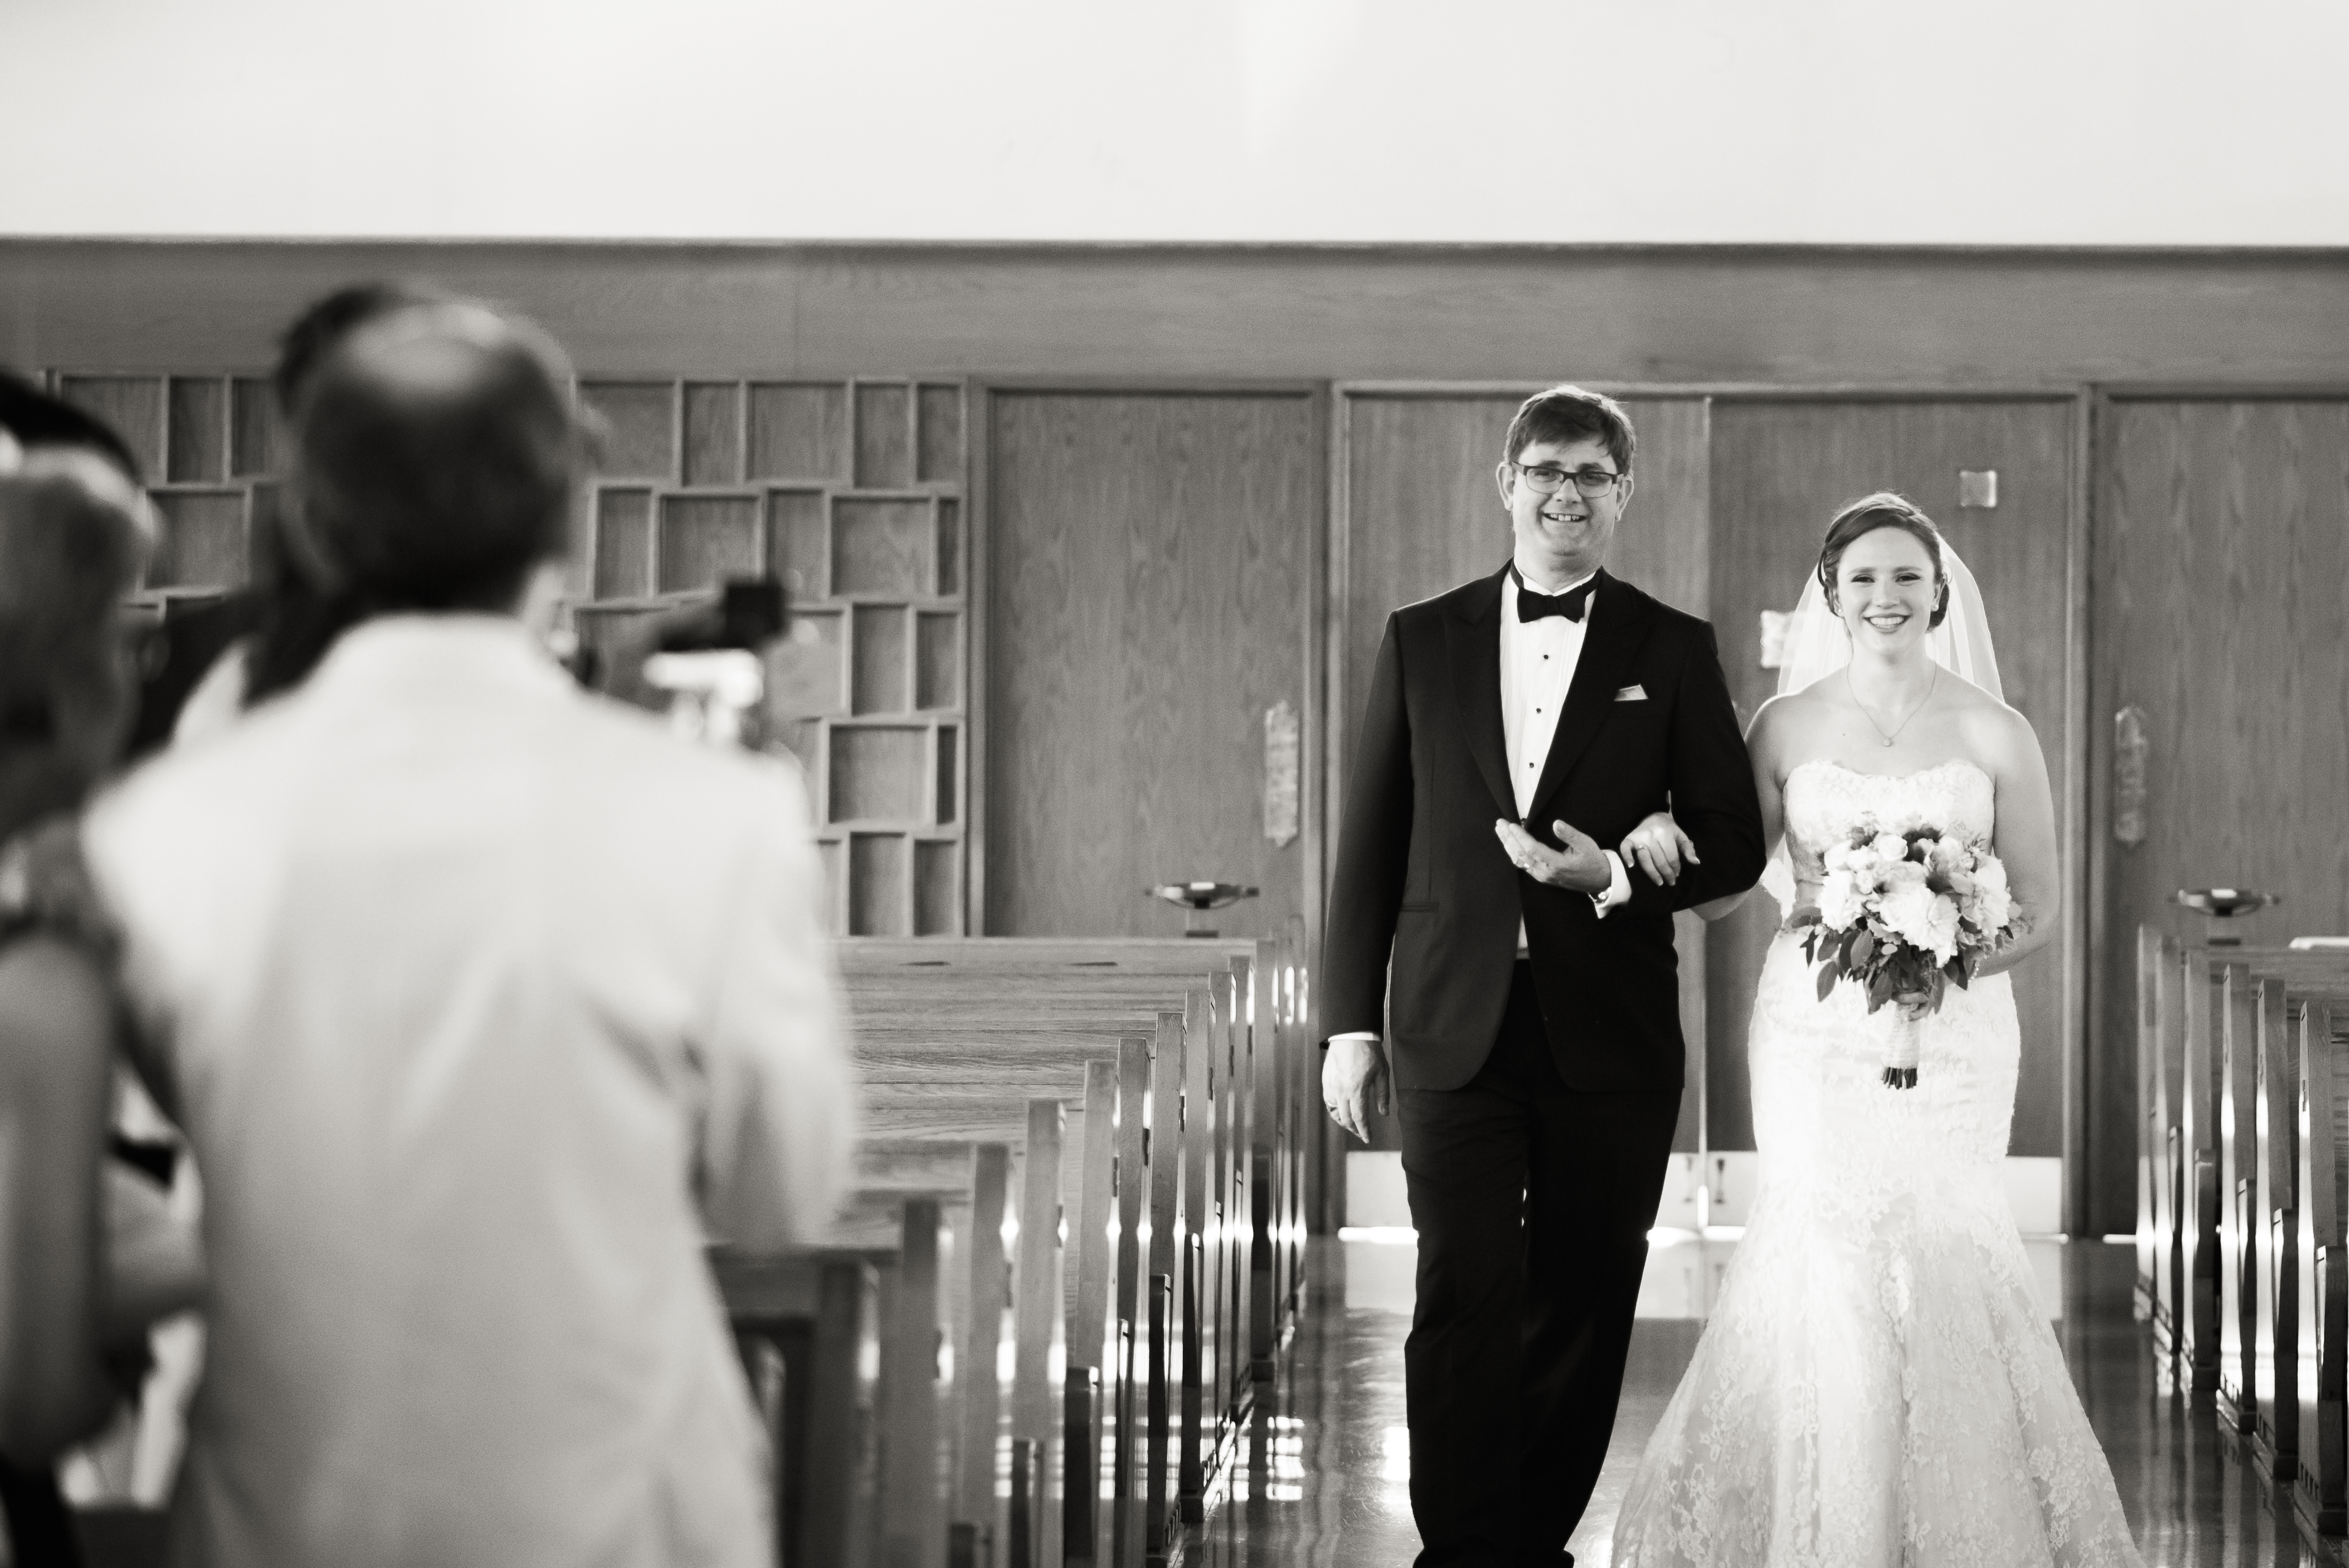 Dad walking the bride down the aisle in Toronto